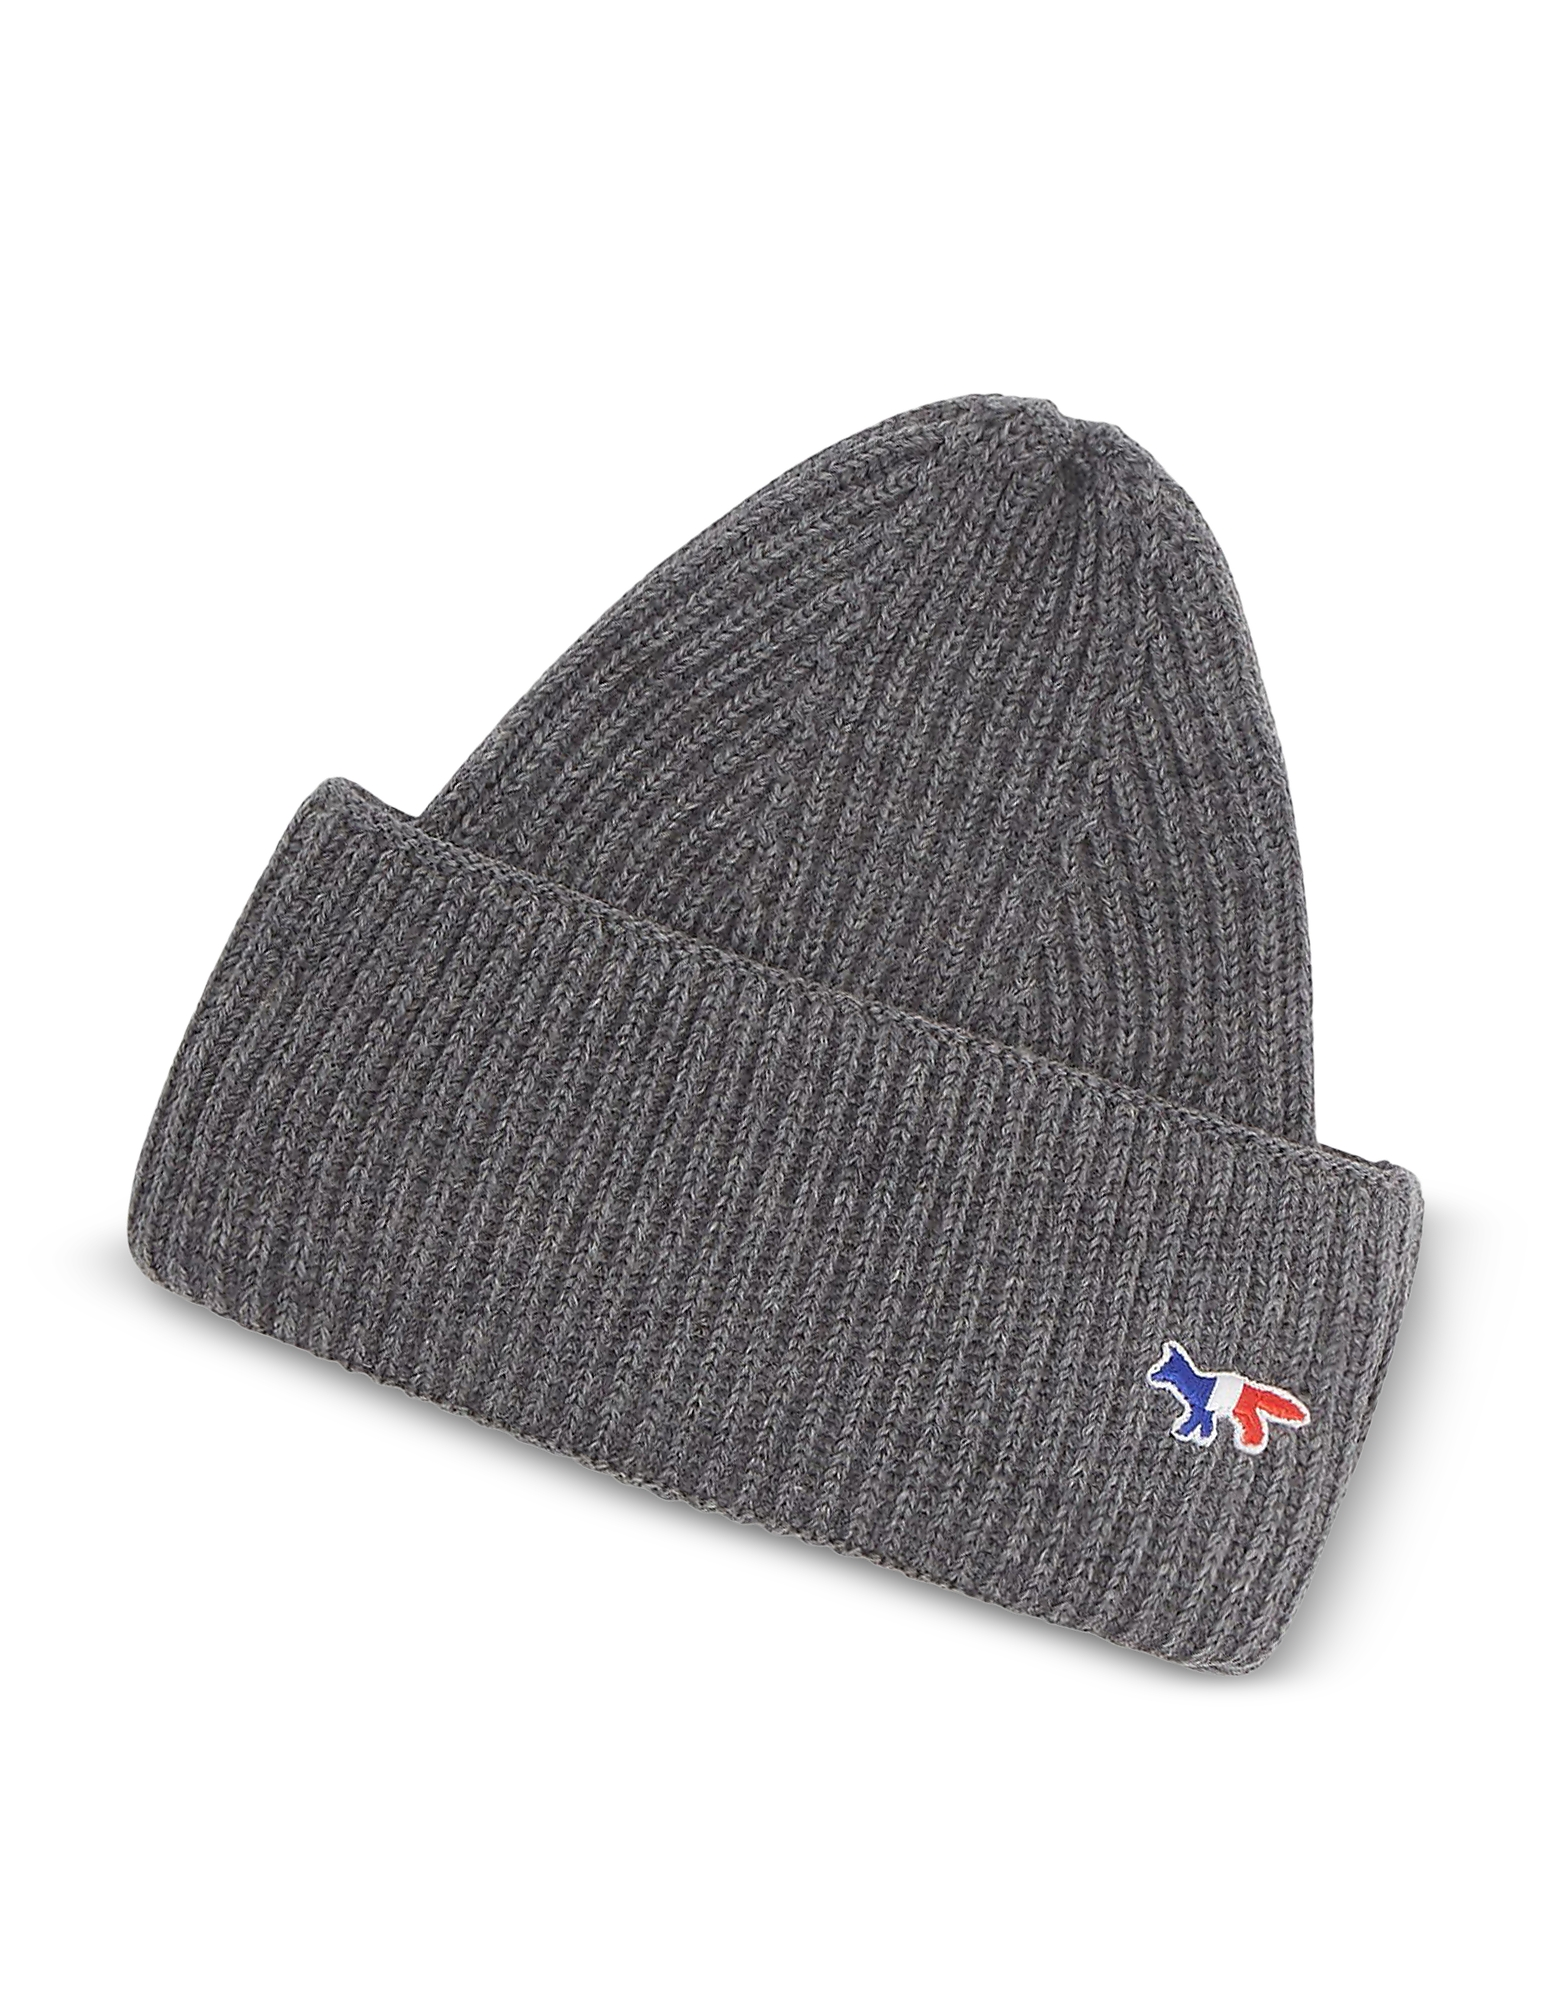 Ribbed Tricolor Fox Patch Beanie